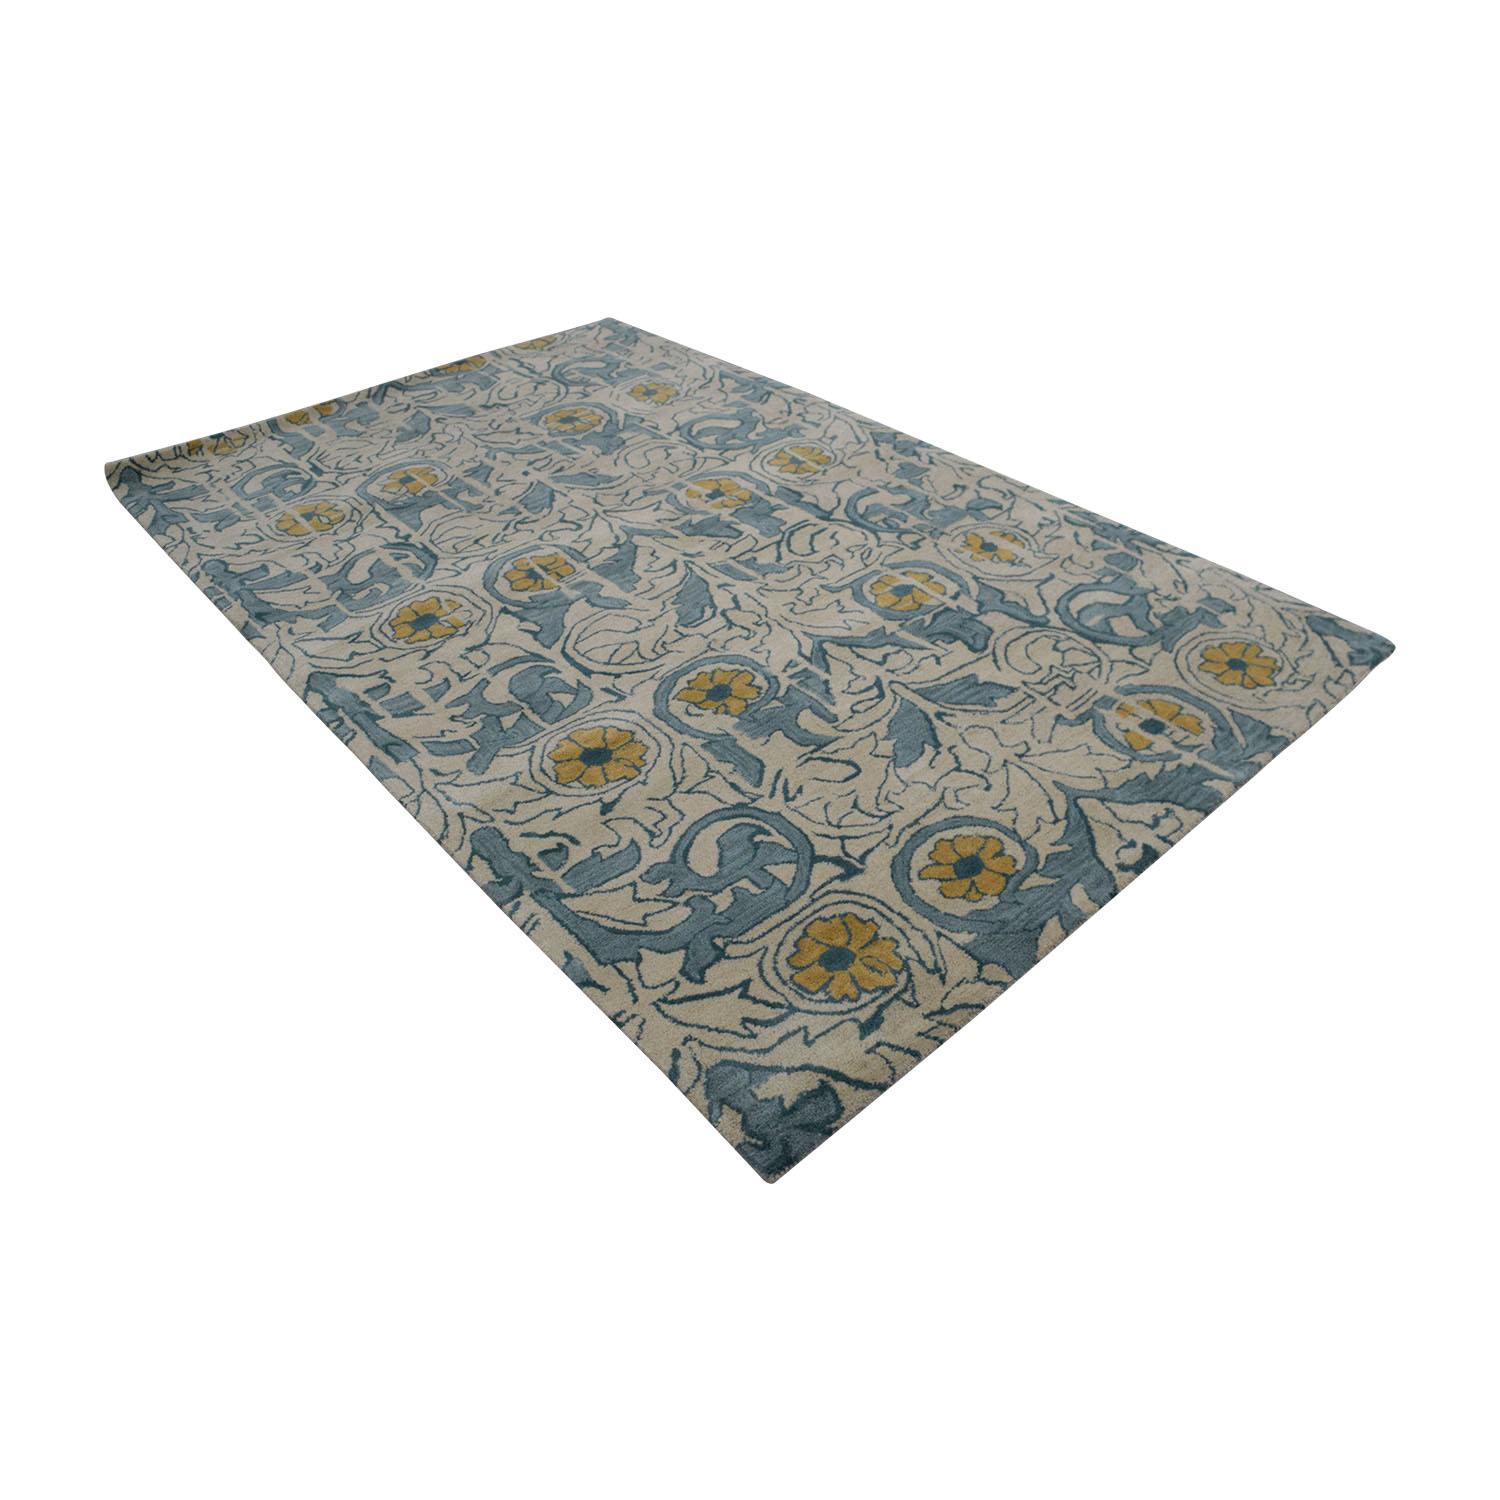 shop Obeetee Flatweave Beige and Blue Floral Wool Rug Obeetee